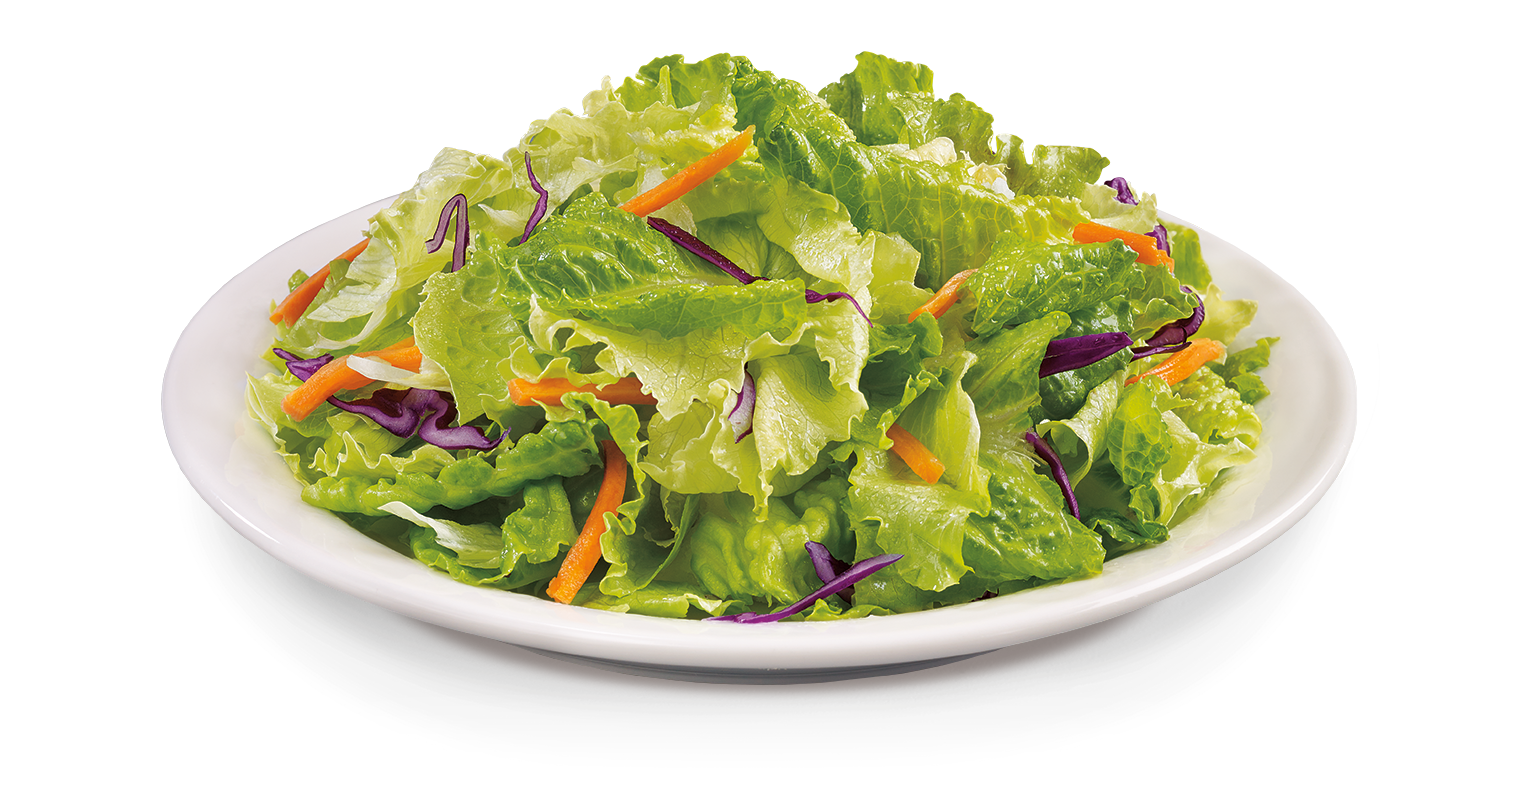 Salad bar png. Mix